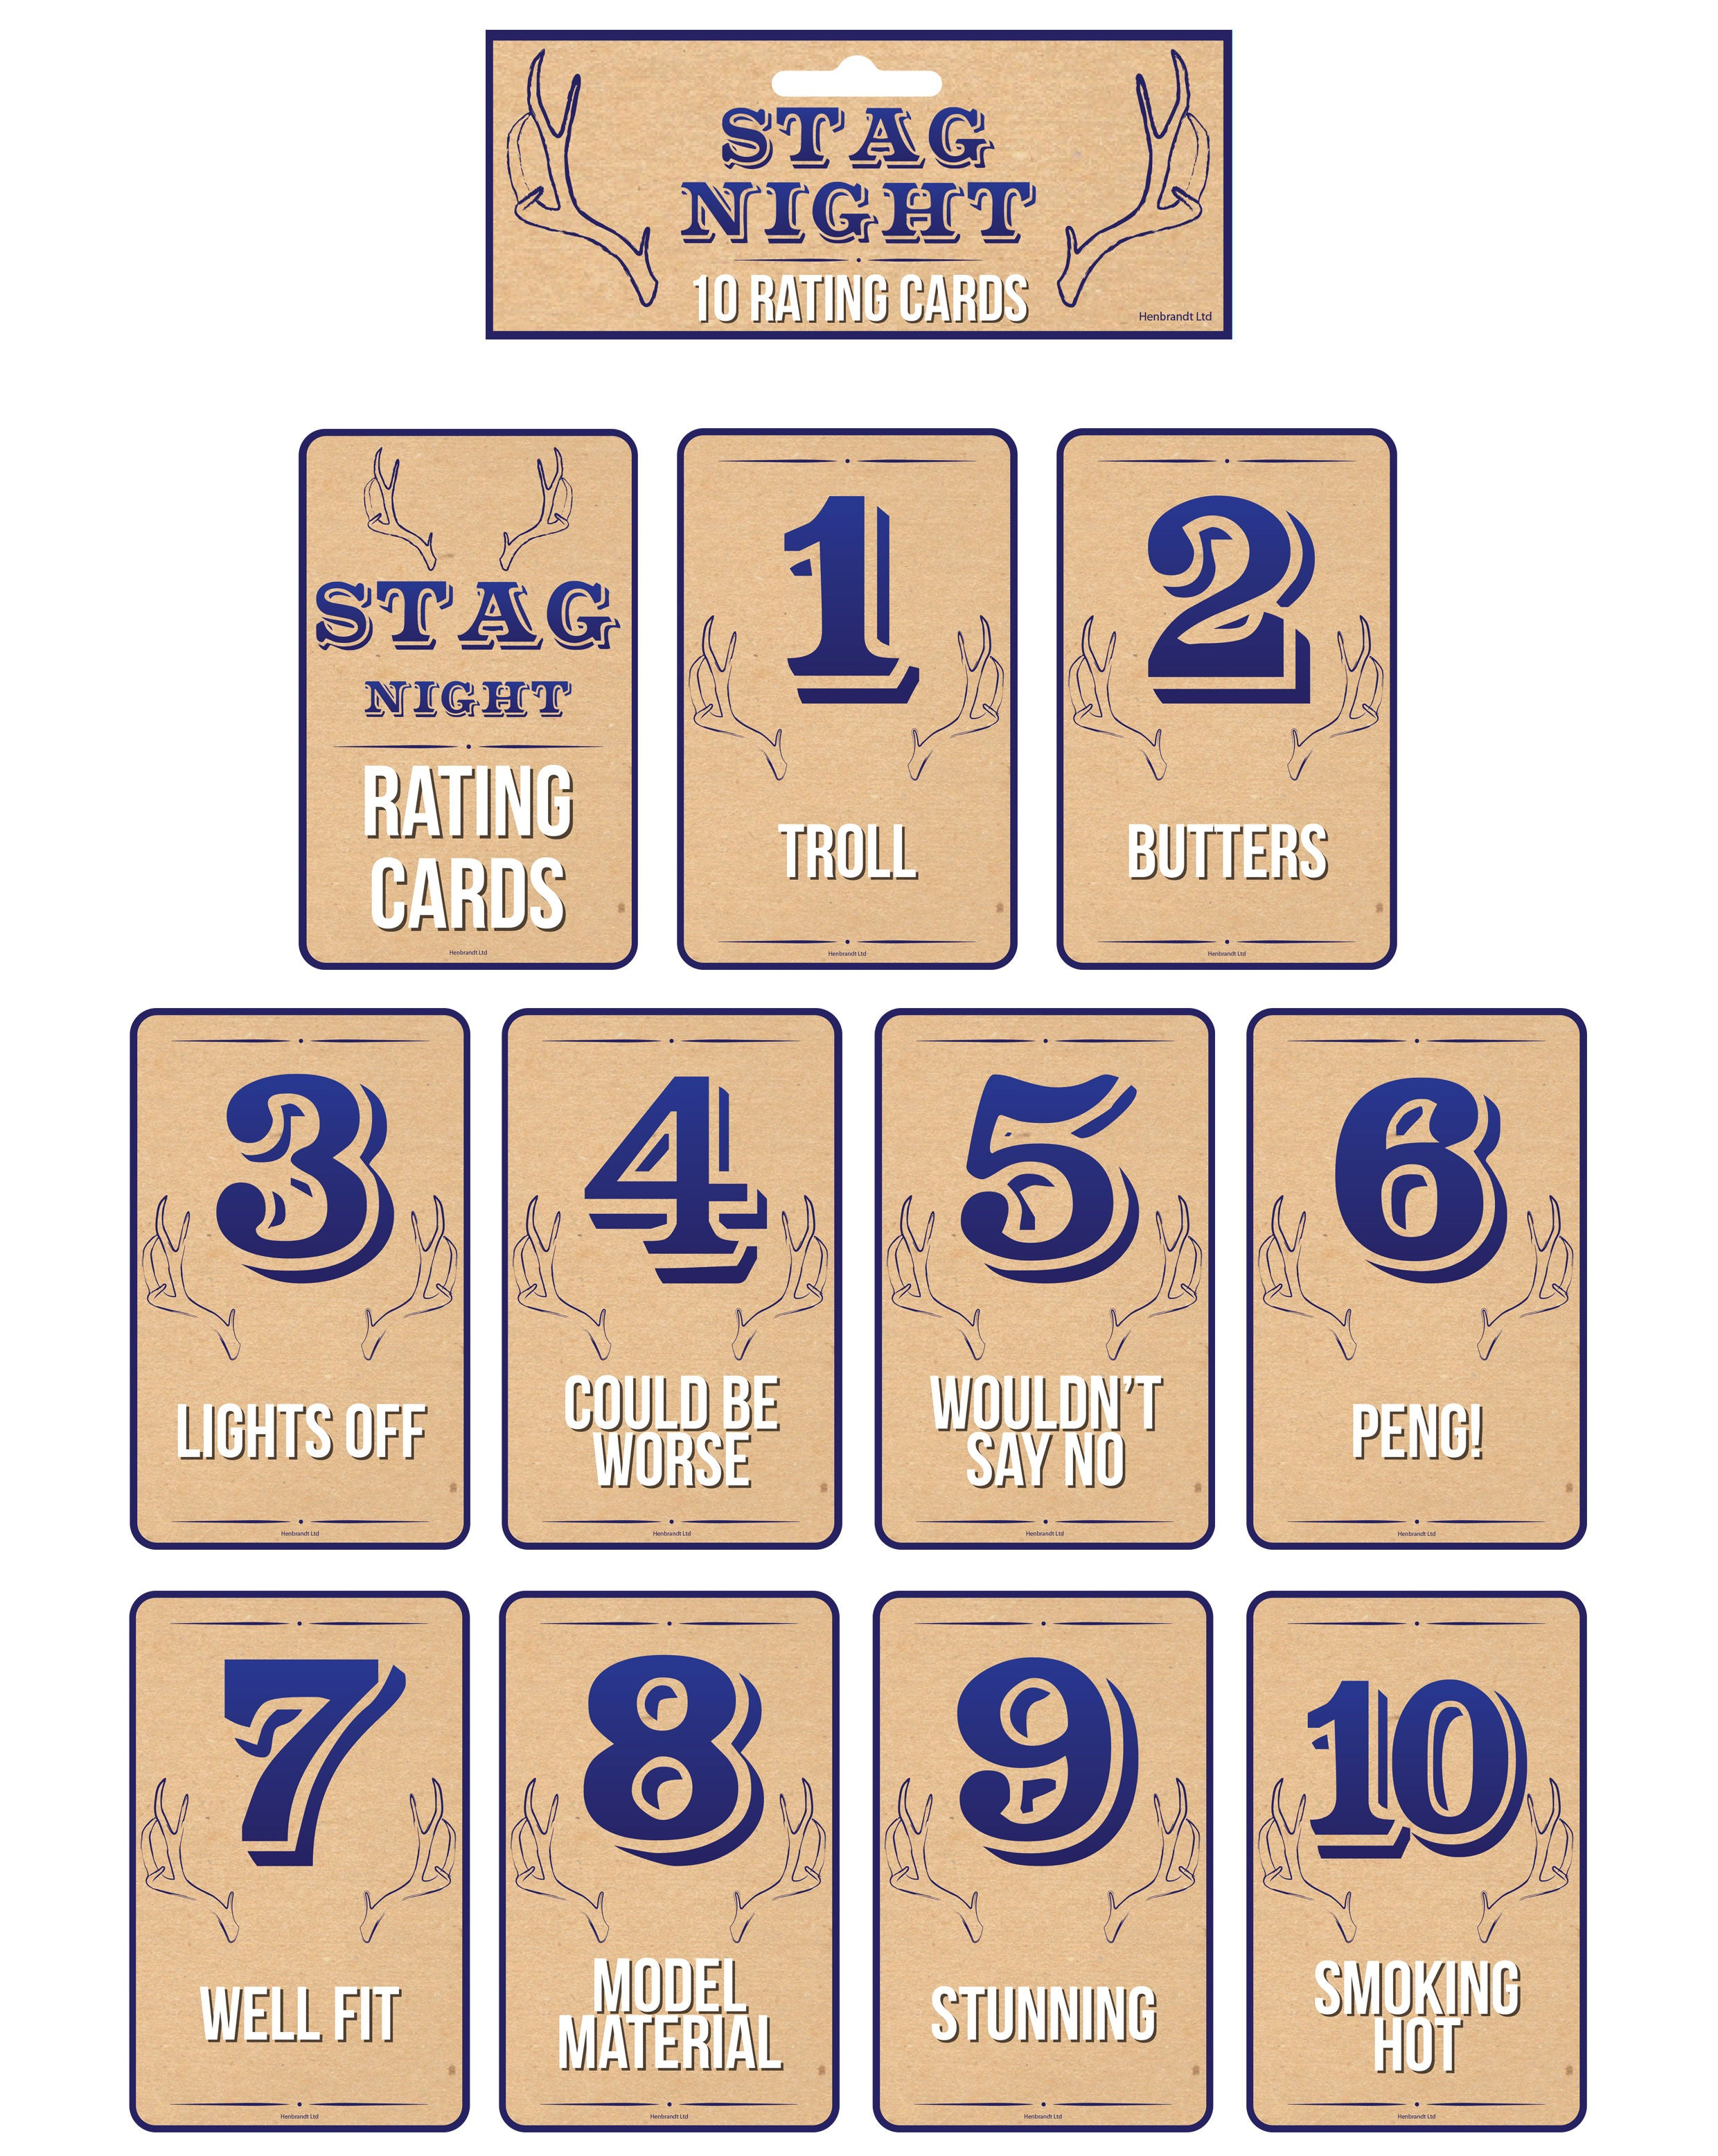 Stag night 2 game casinos that accept discover